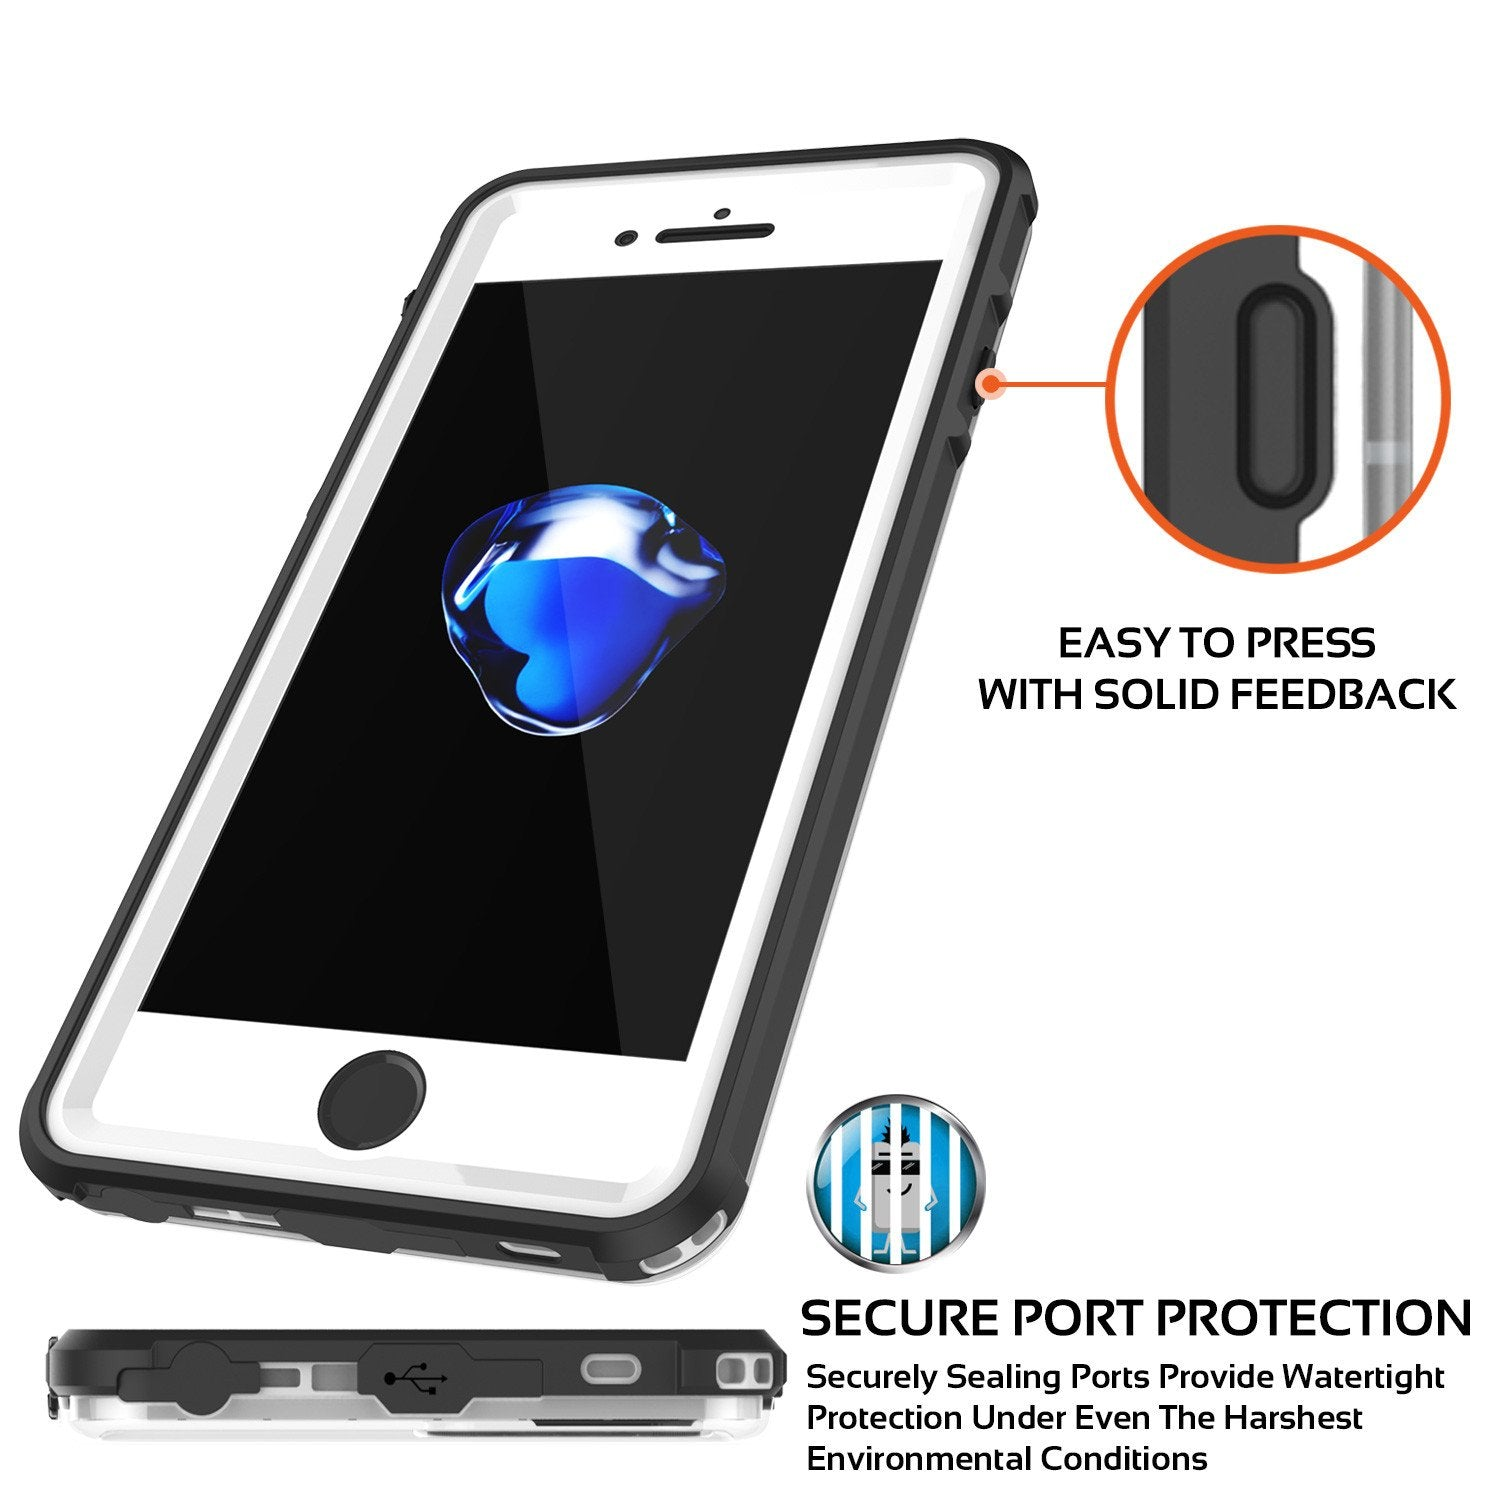 Apple iPhone 8 Waterproof Case, PUNKcase CRYSTAL White W/ Attached Screen Protector  | Warranty